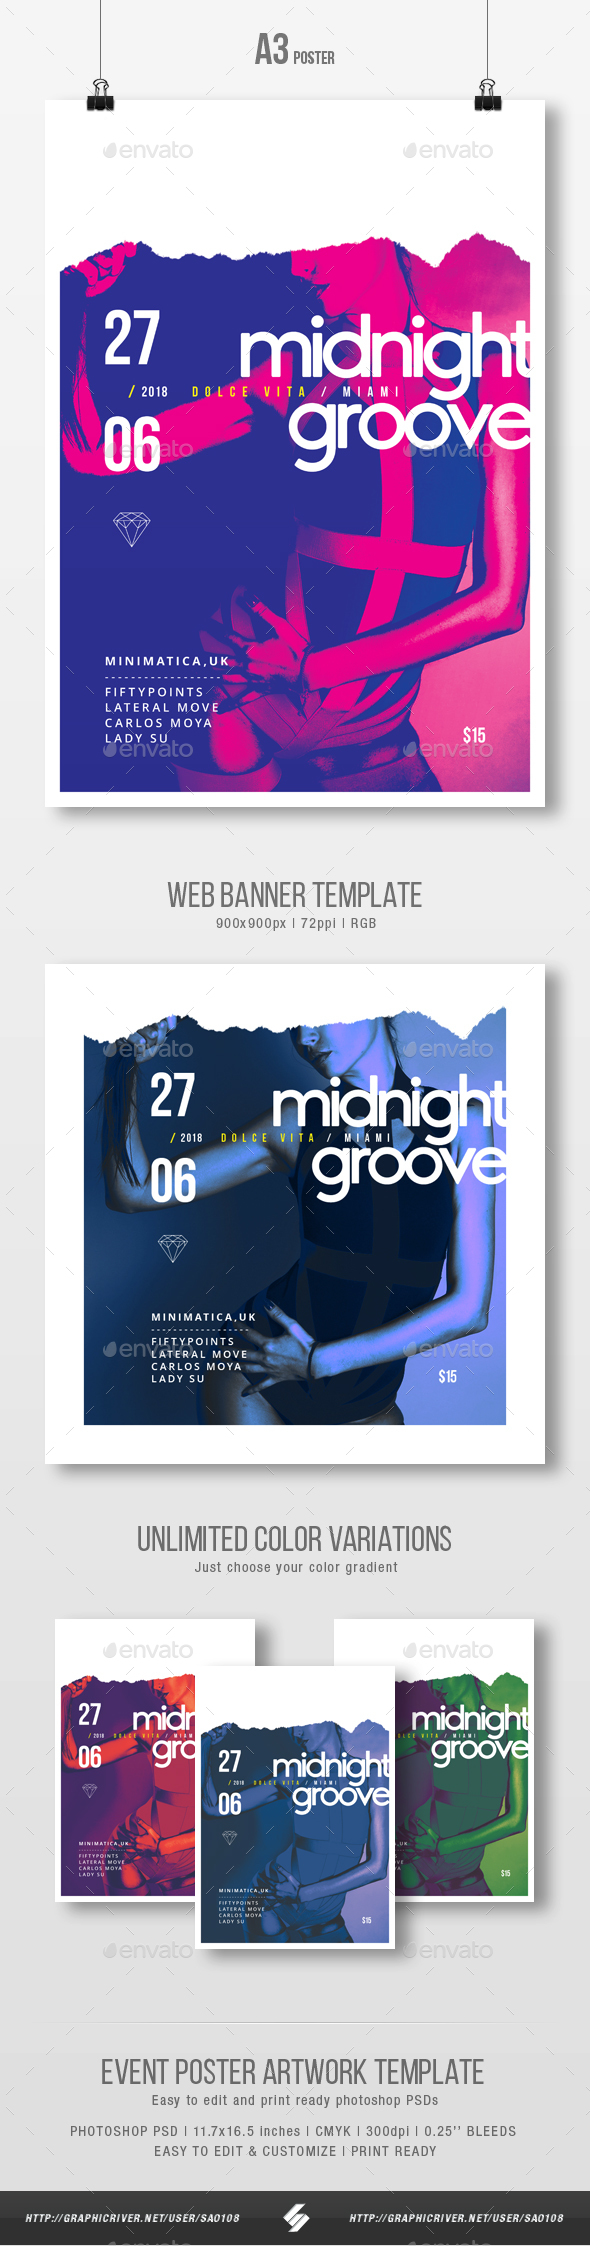 Midnight Groove - Party Flyer / Poster Artwork Template A3 - Clubs & Parties Events